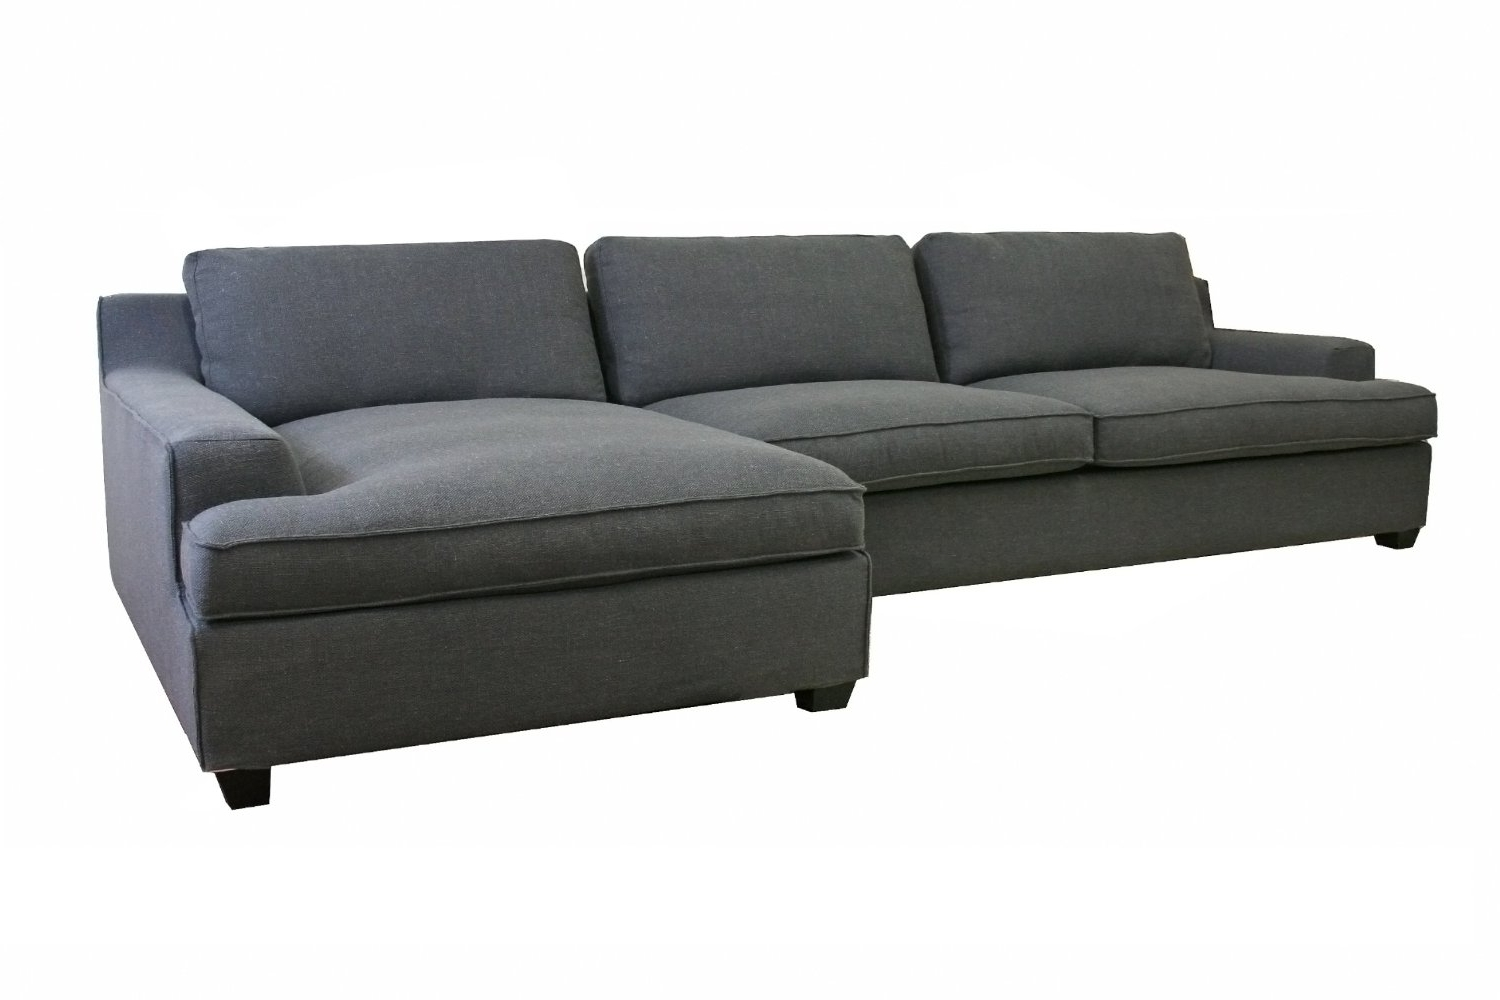 Recent Awesome Couch With Chaise Lounge 81 On Sofas And Couches Ideas With Couches With Chaise (View 12 of 15)